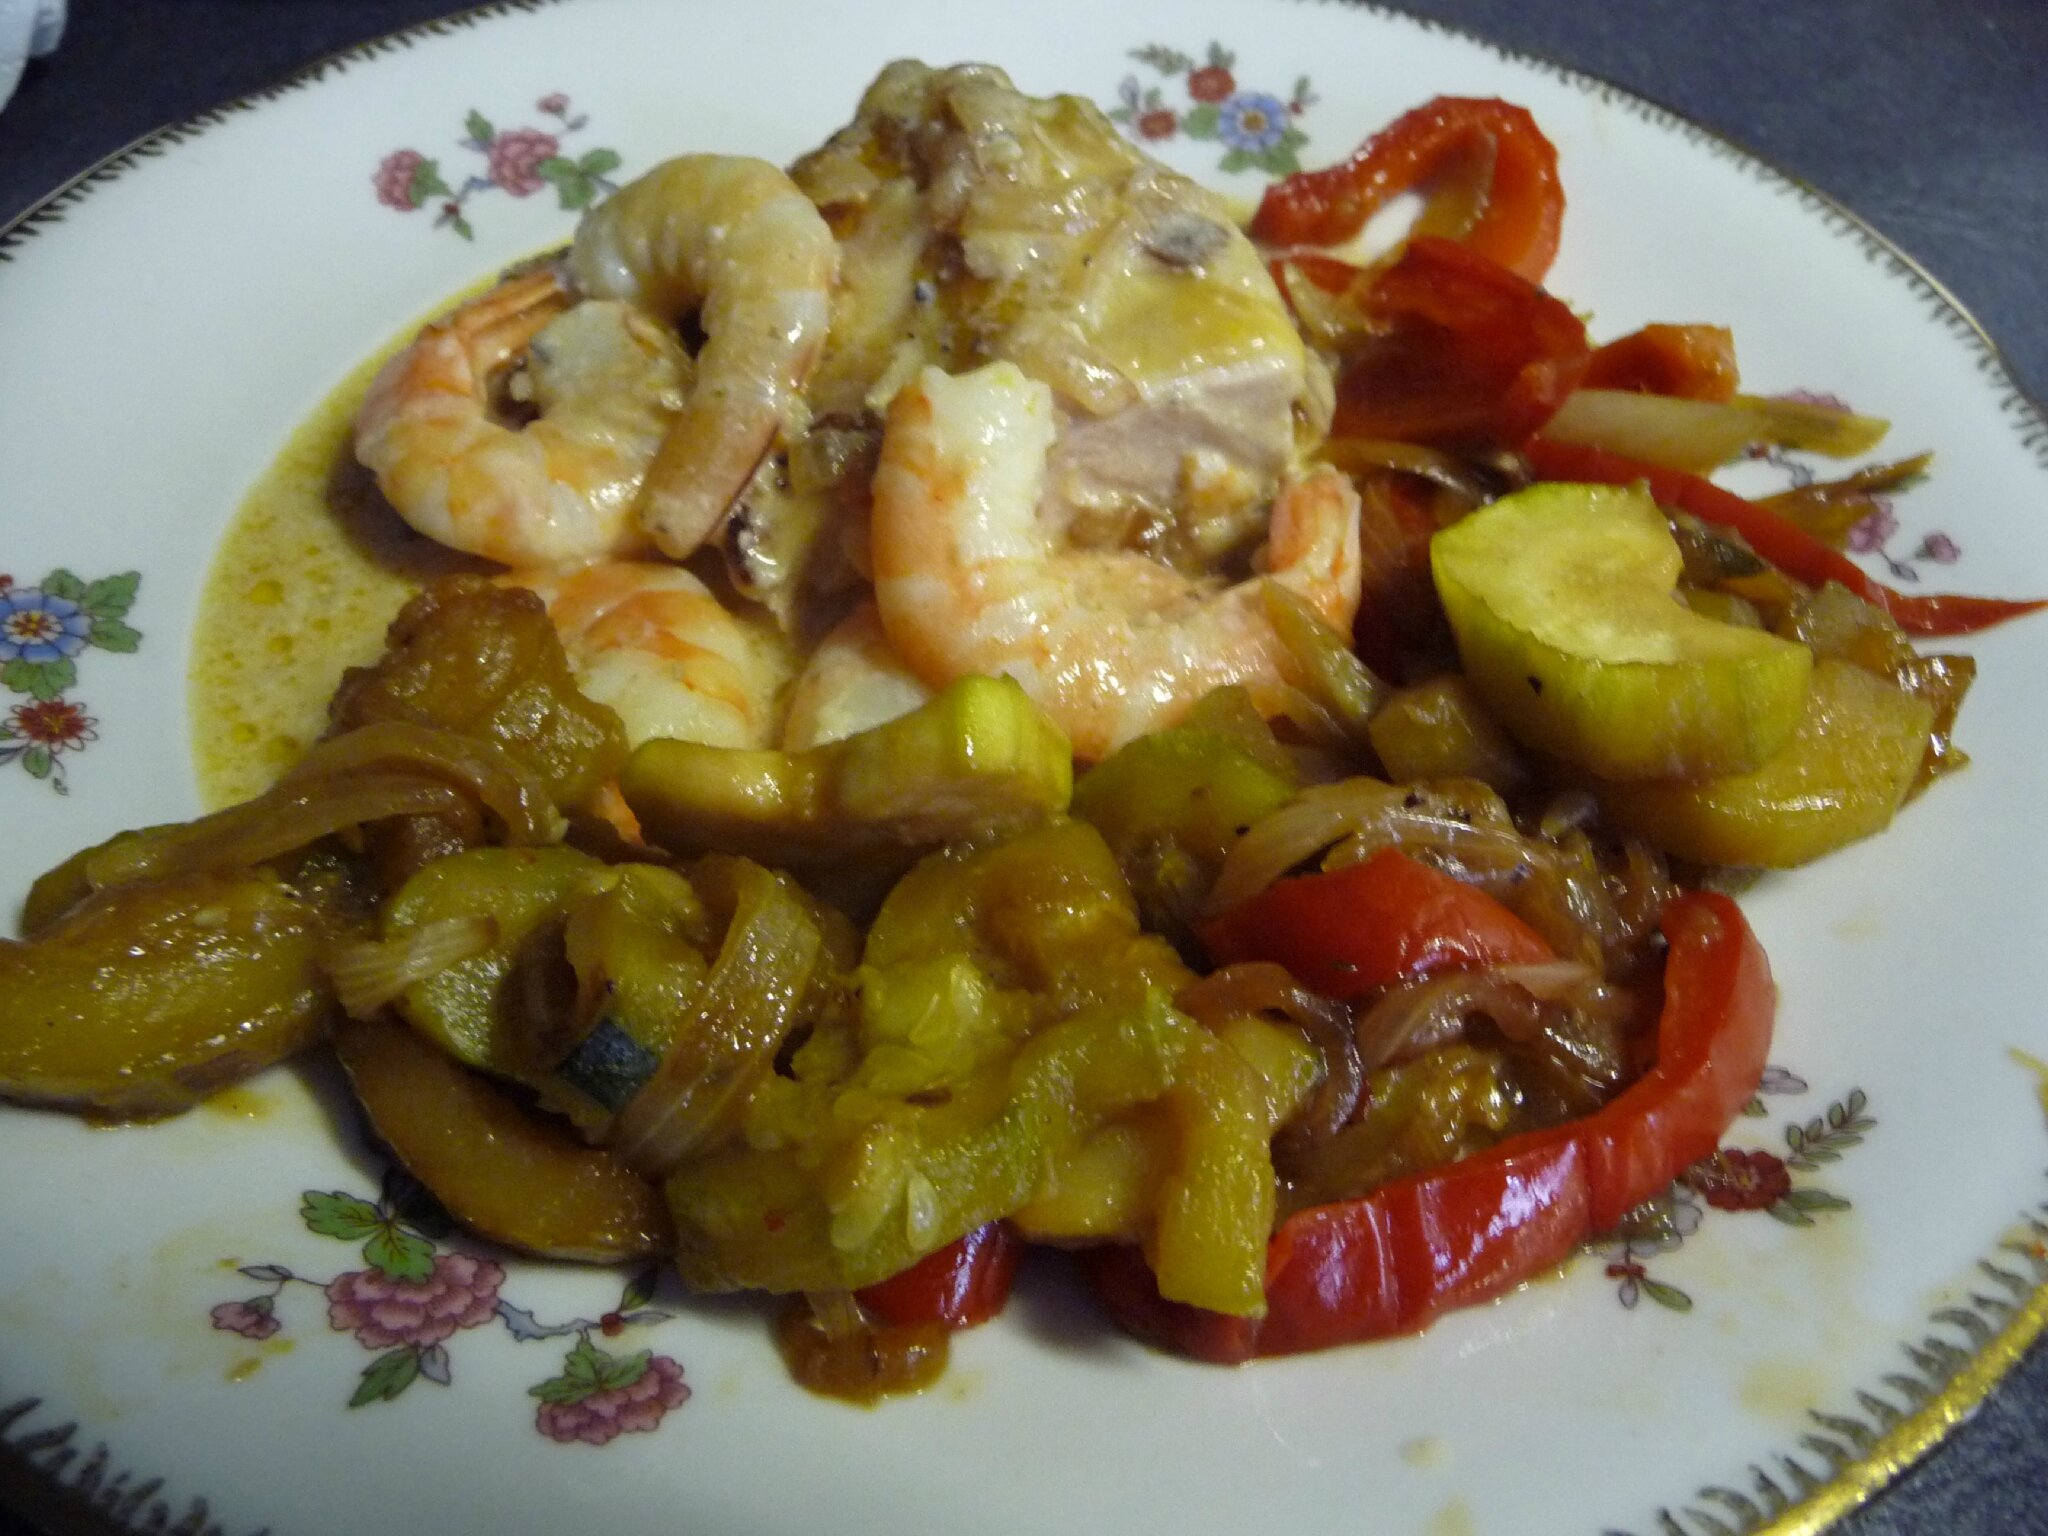 POULET AUX GAMBAS SAUCE CREMEE AU WHISKY